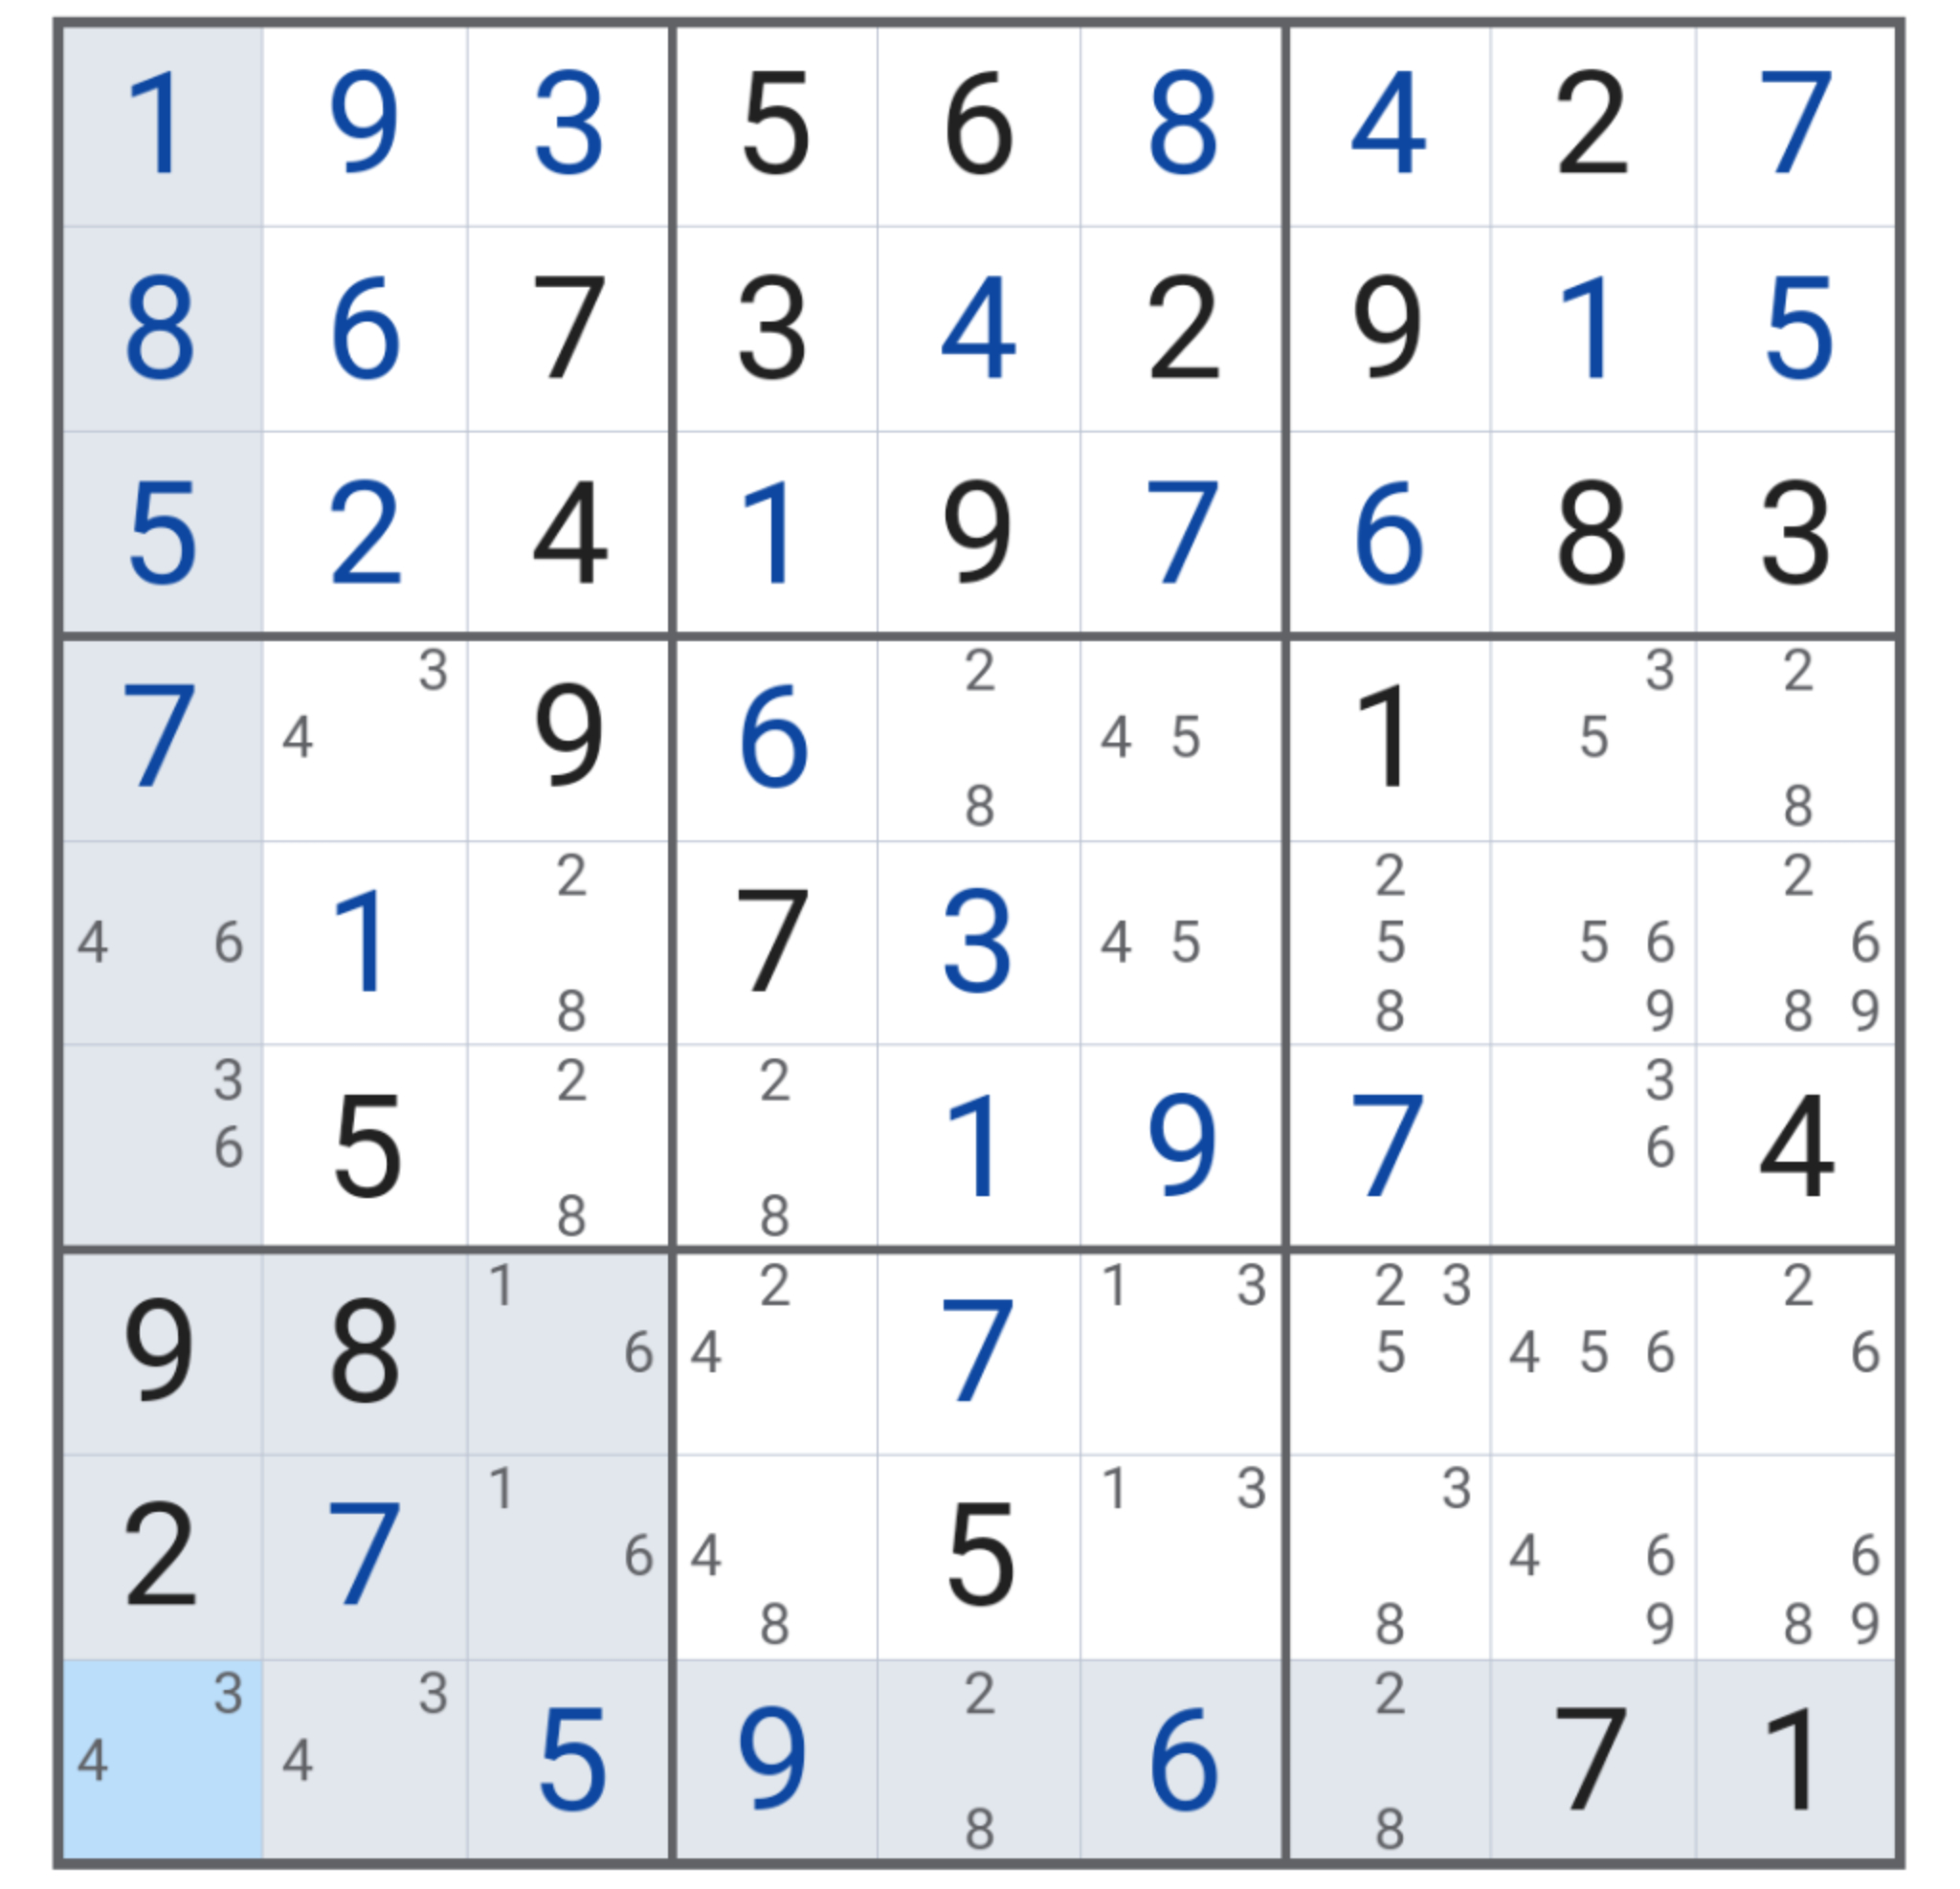 Stuck, How Do I Find Any X-Wings Or Swordfishes? : Sudoku